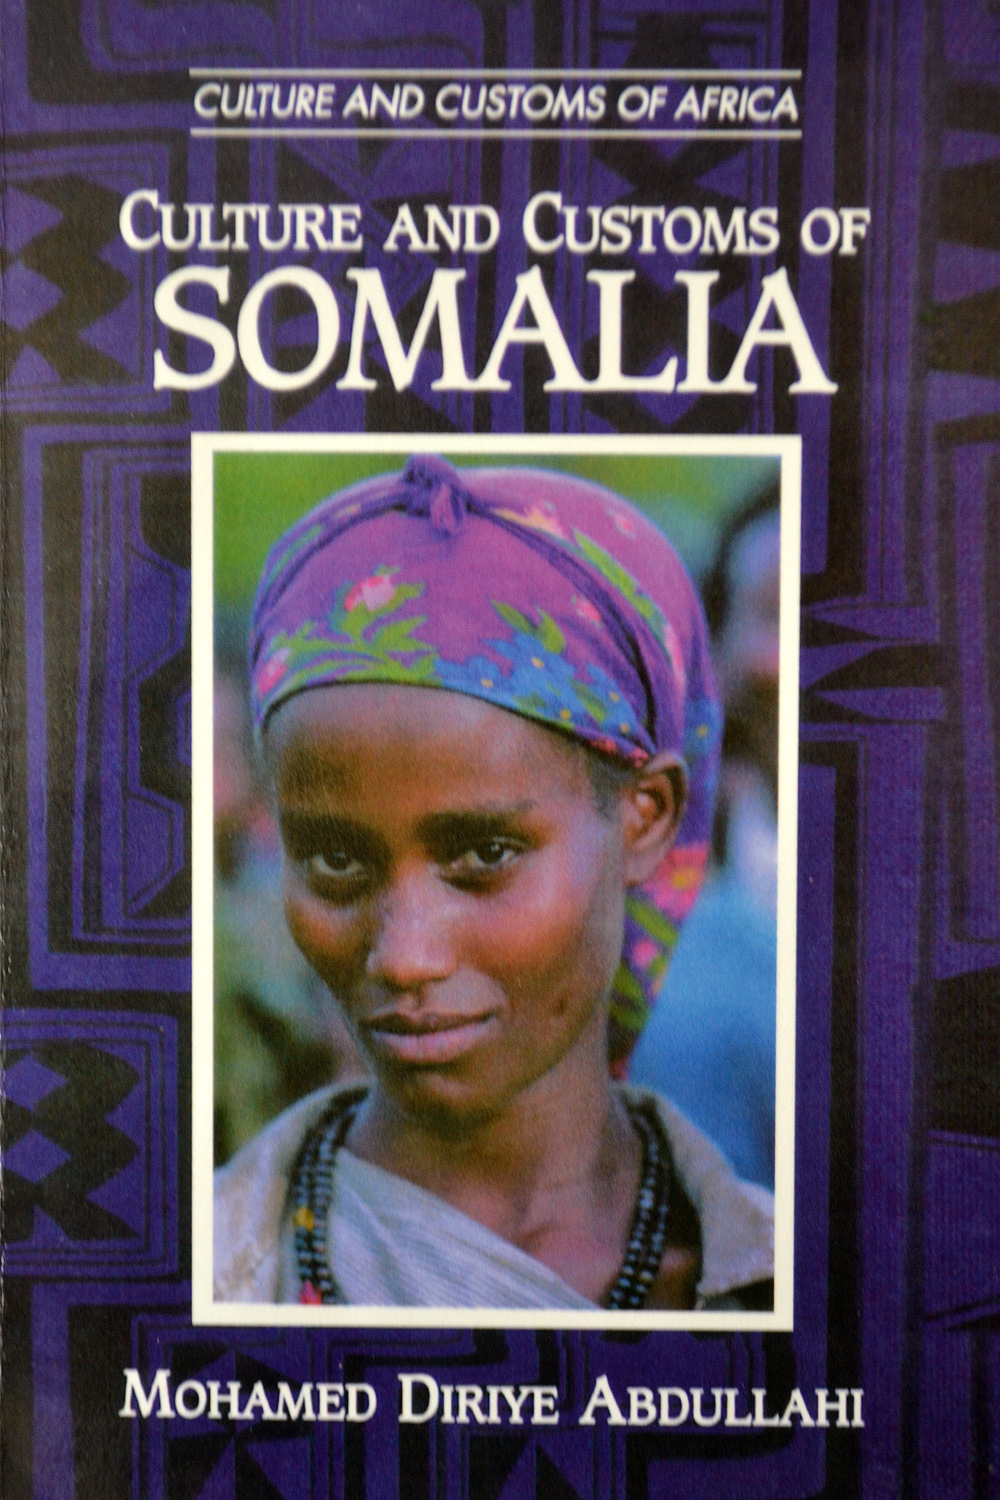 Kniha Culture and Customs of Somalia. Foto: Barbora Šajmovičová, 2015.